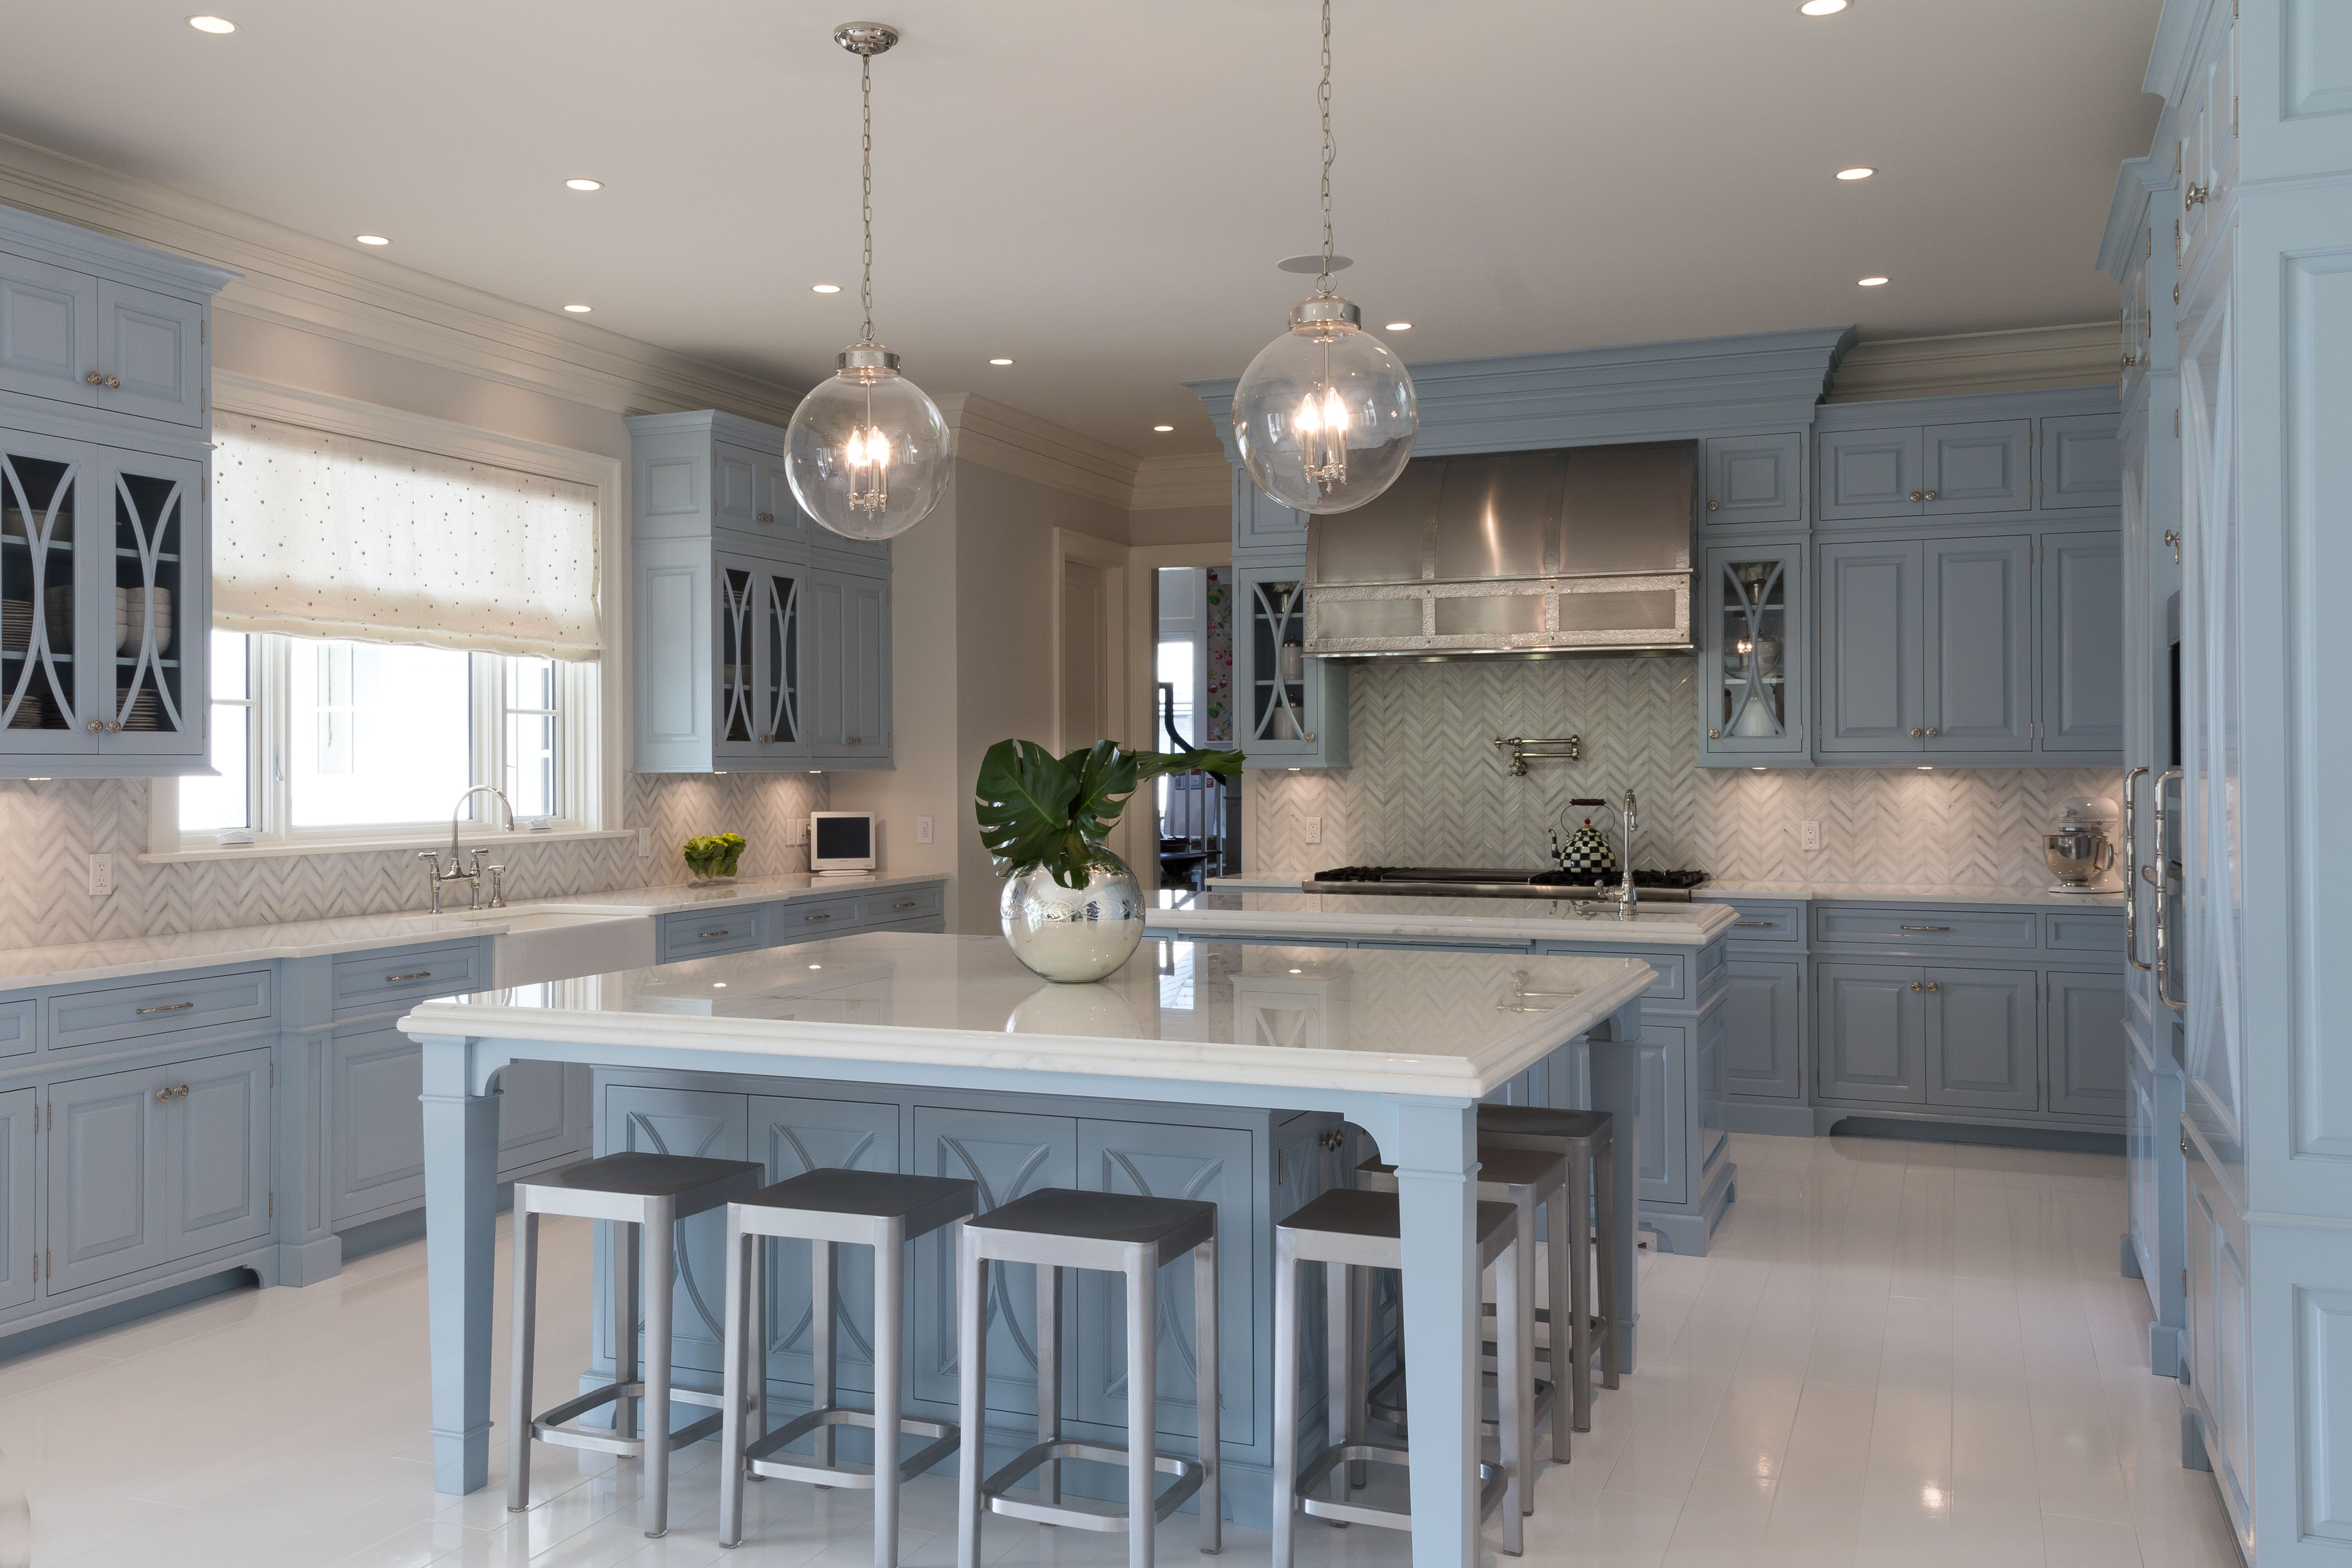 How To Match Cabinet Paint Countertops Sline Painting